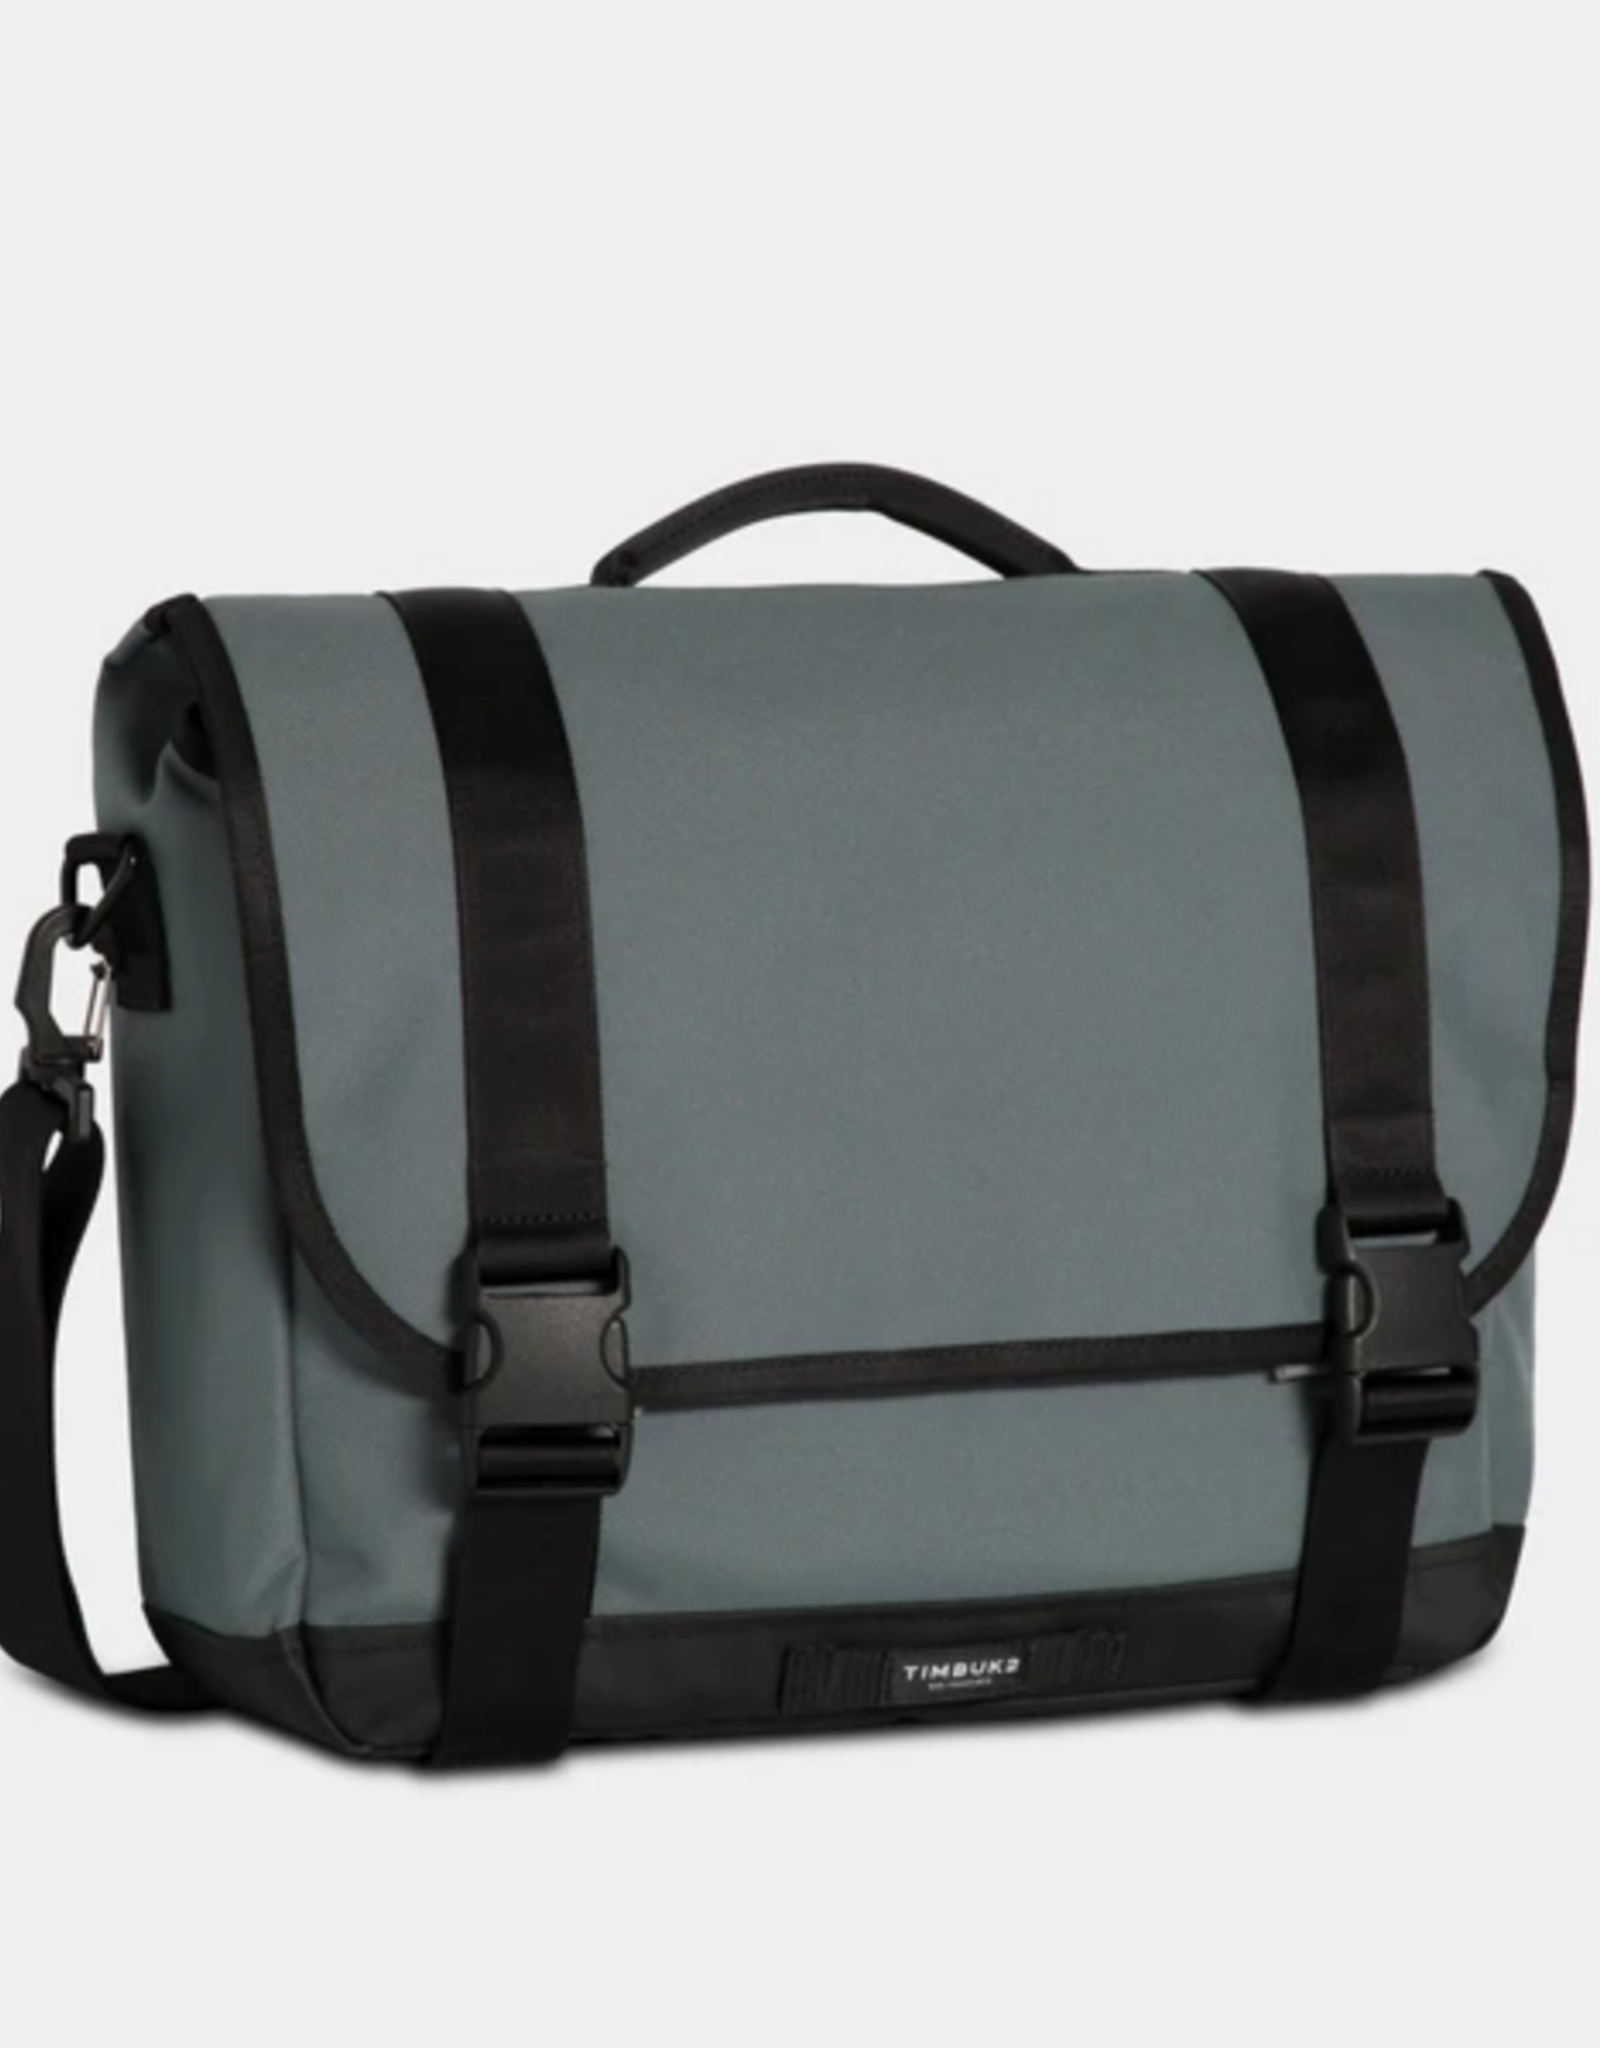 TIMBUK2 Commute Messenger Bag - Small